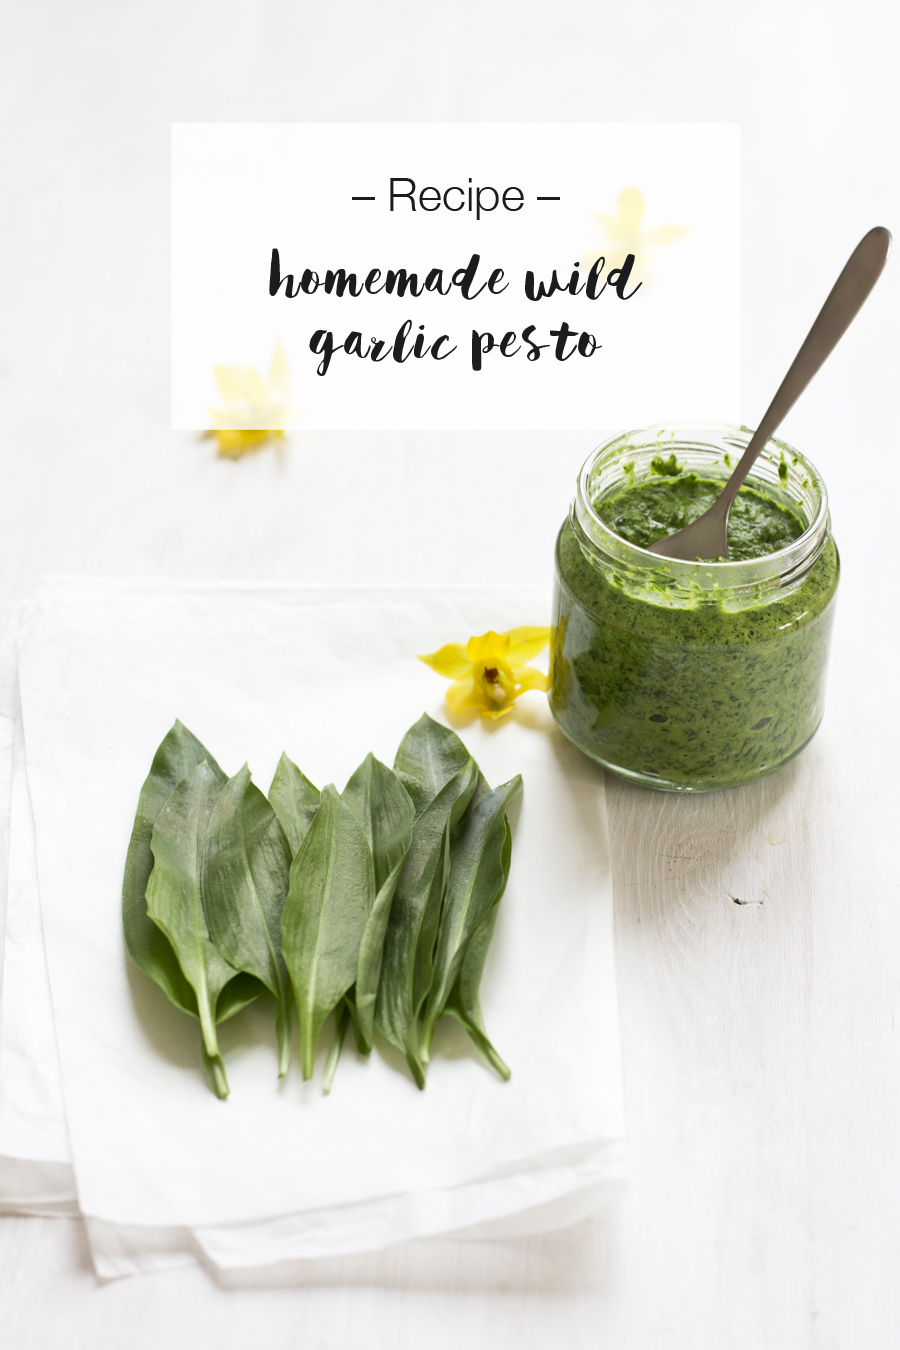 Homemade wild garlic pesto recipe | LOOK WHAT I MADE ...